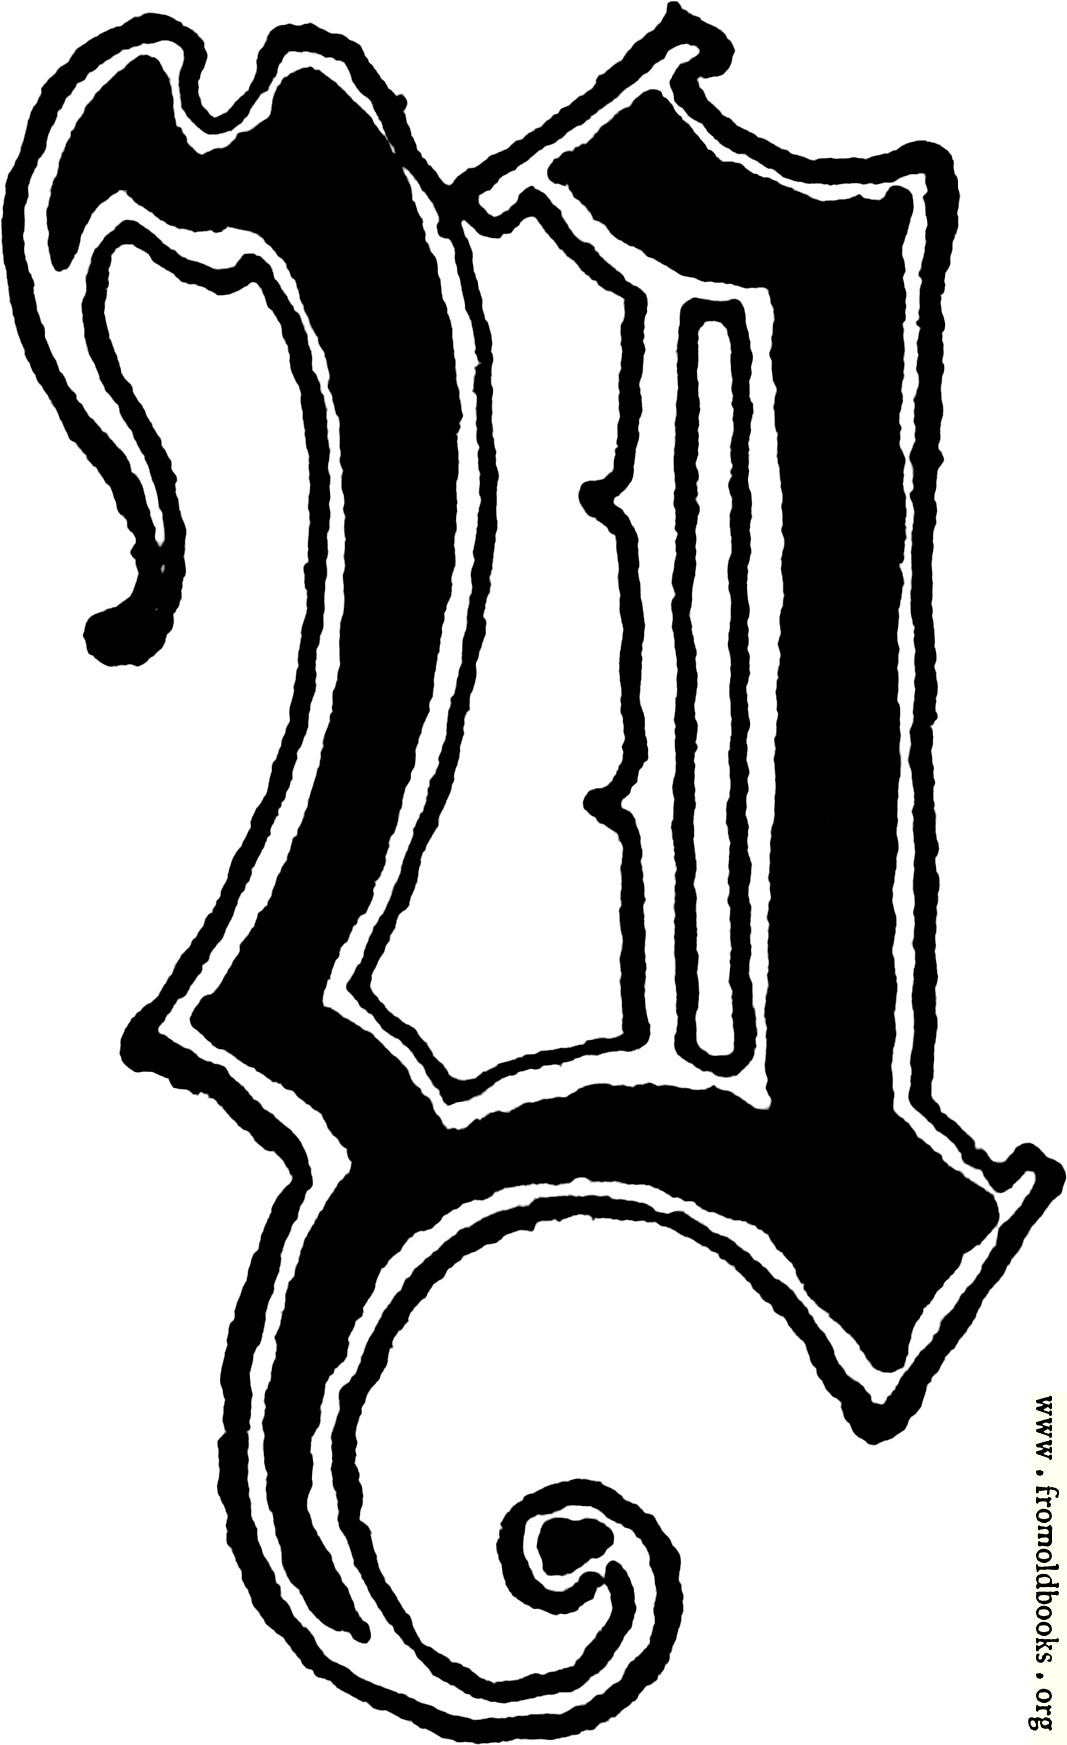 Calligraphic letter y in 15th century gothic style 1067x1745 216k jpg free download altavistaventures Image collections